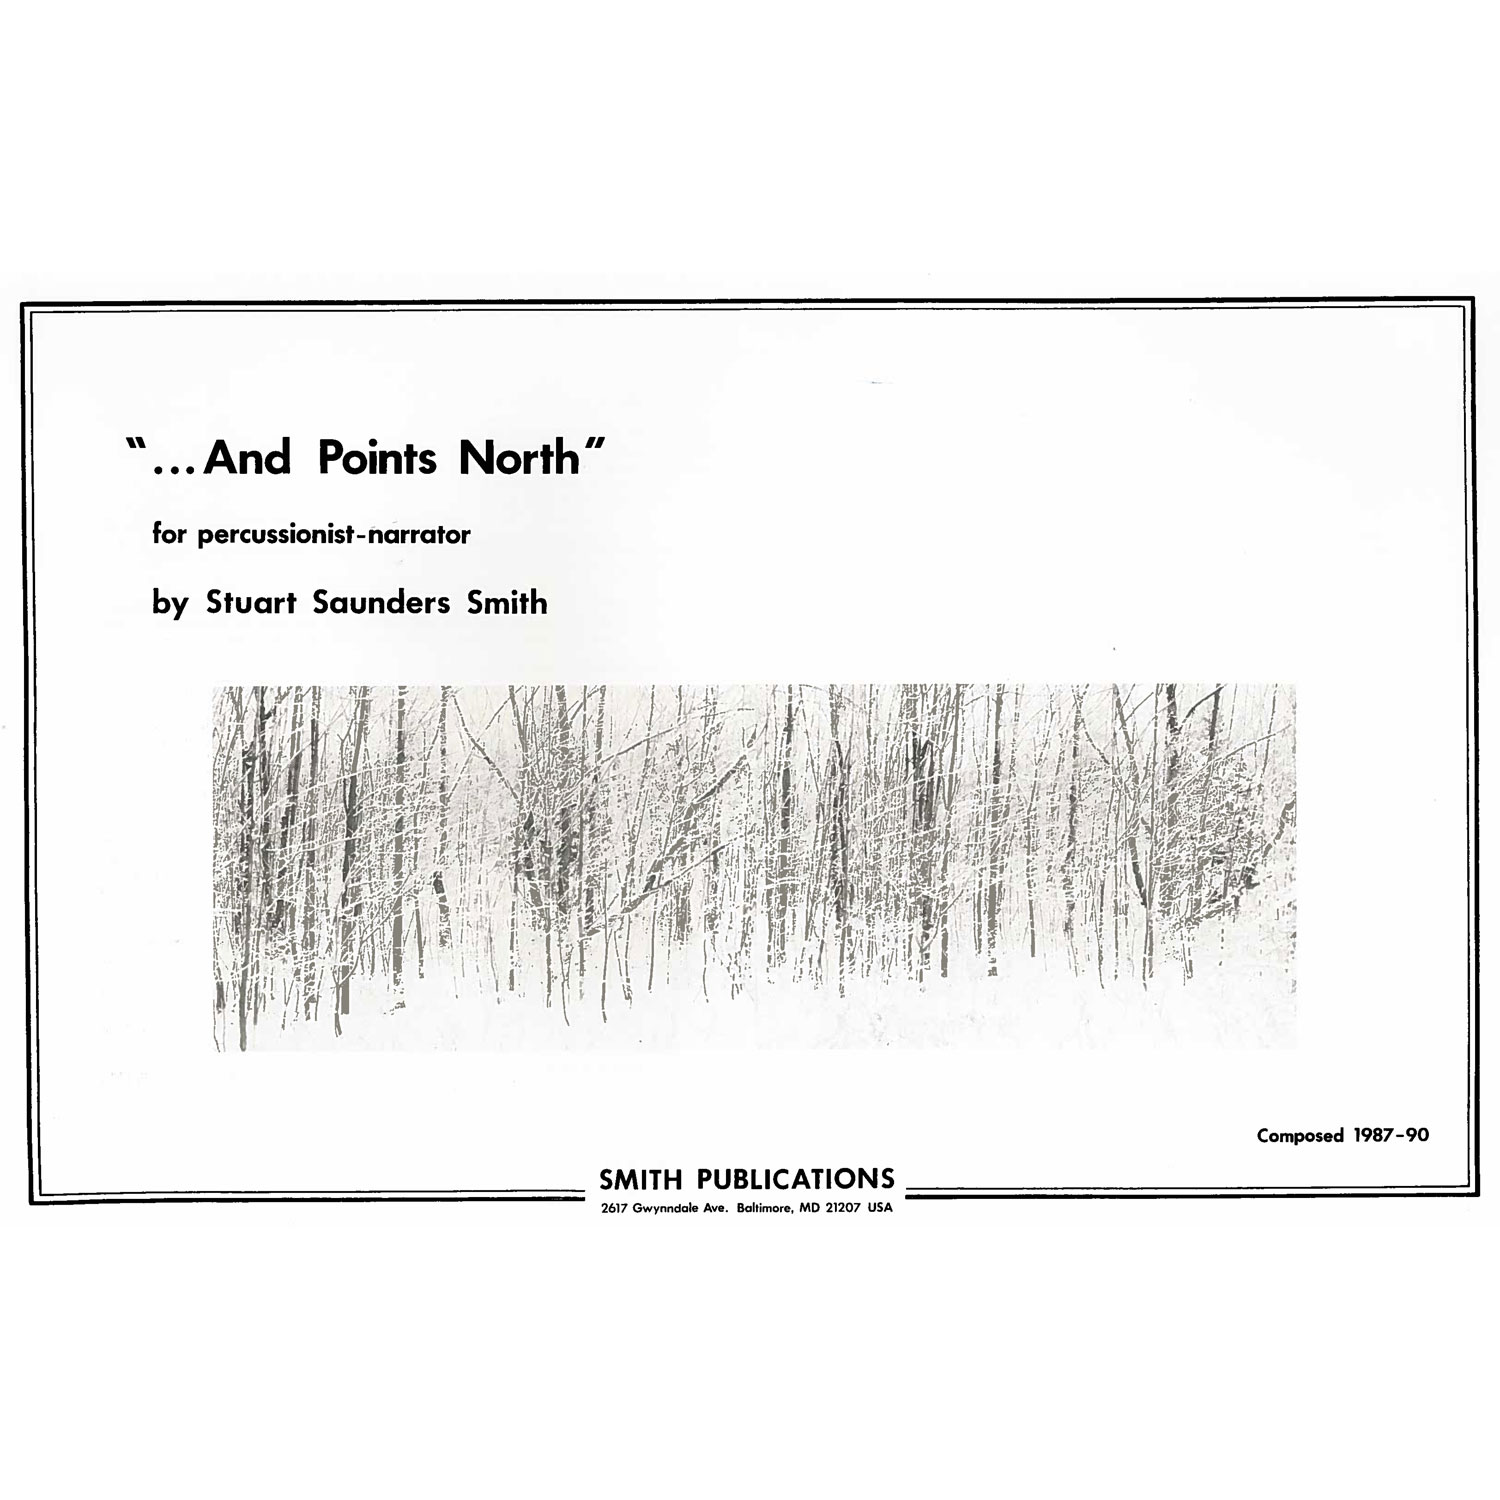 ...And Points North by Stuart Saunders Smith